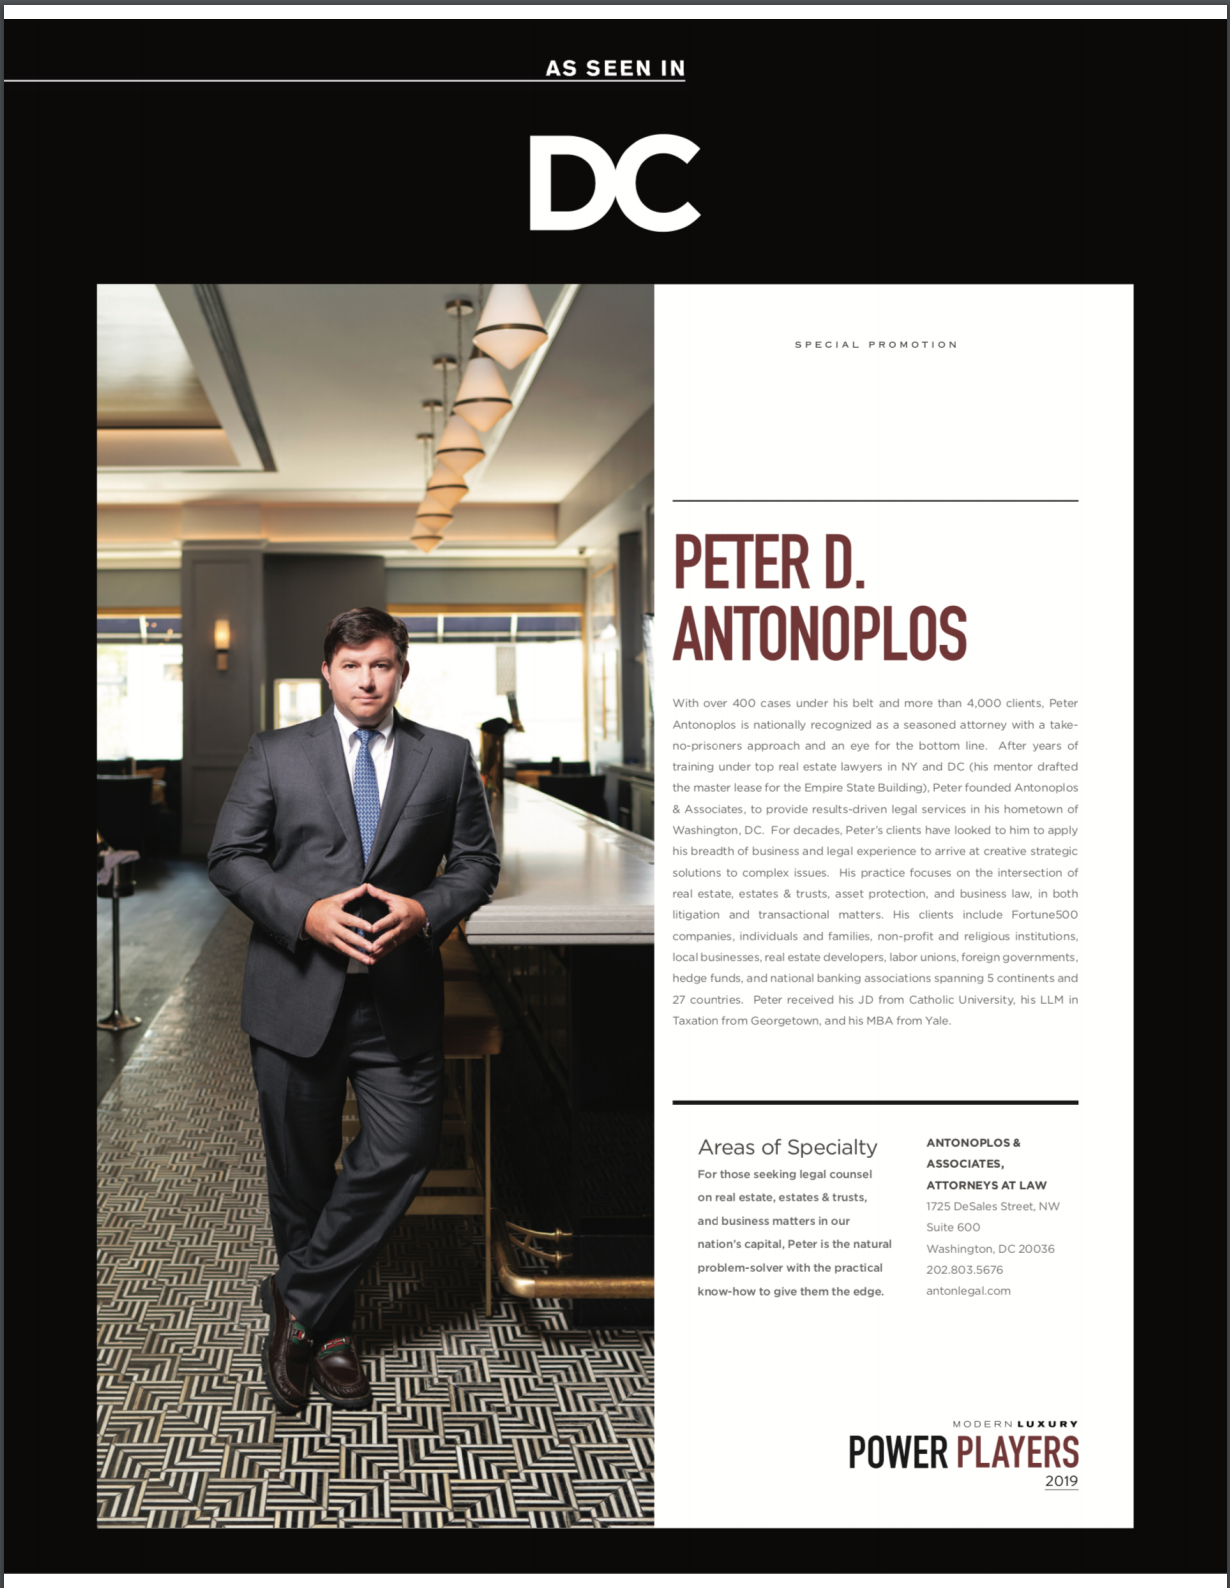 Peter Antonoplos Named DC Power Player Washington DC Legal Article Featured Image by Antonoplos & Associates